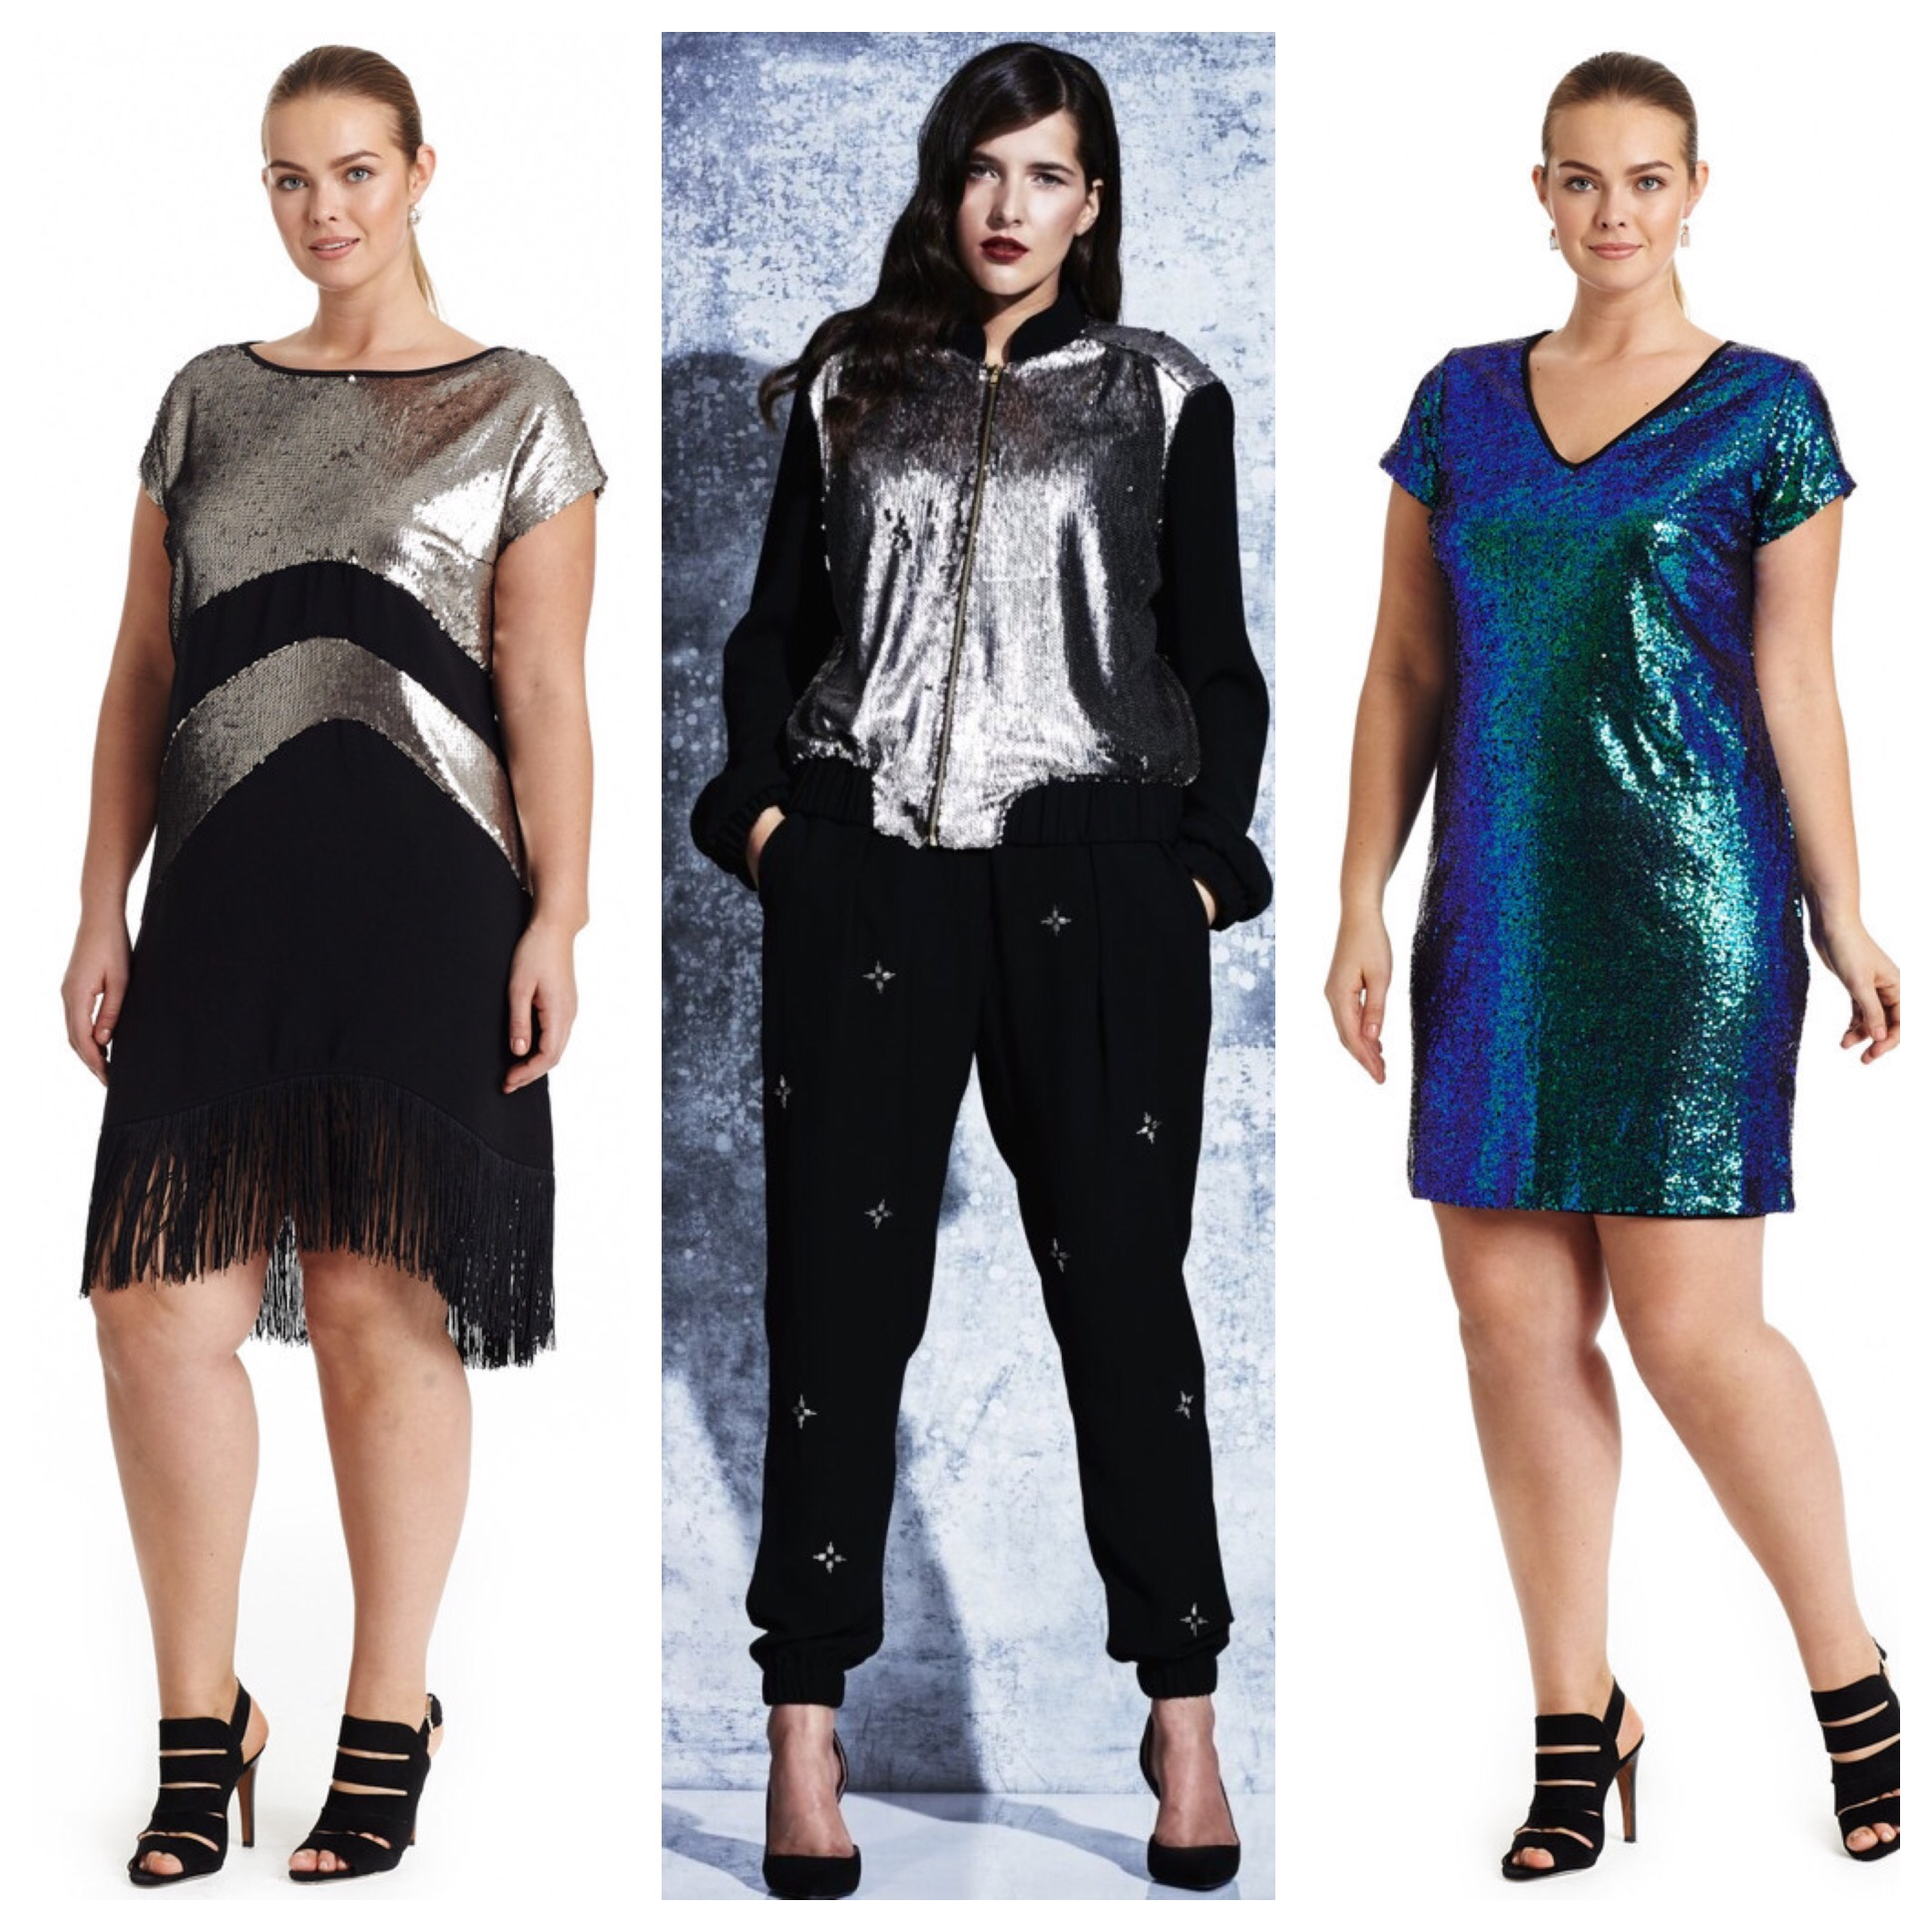 fce5abd1184 The Ultimate 2015 Plus Size Holiday Party Guide  Sequins – Curvily